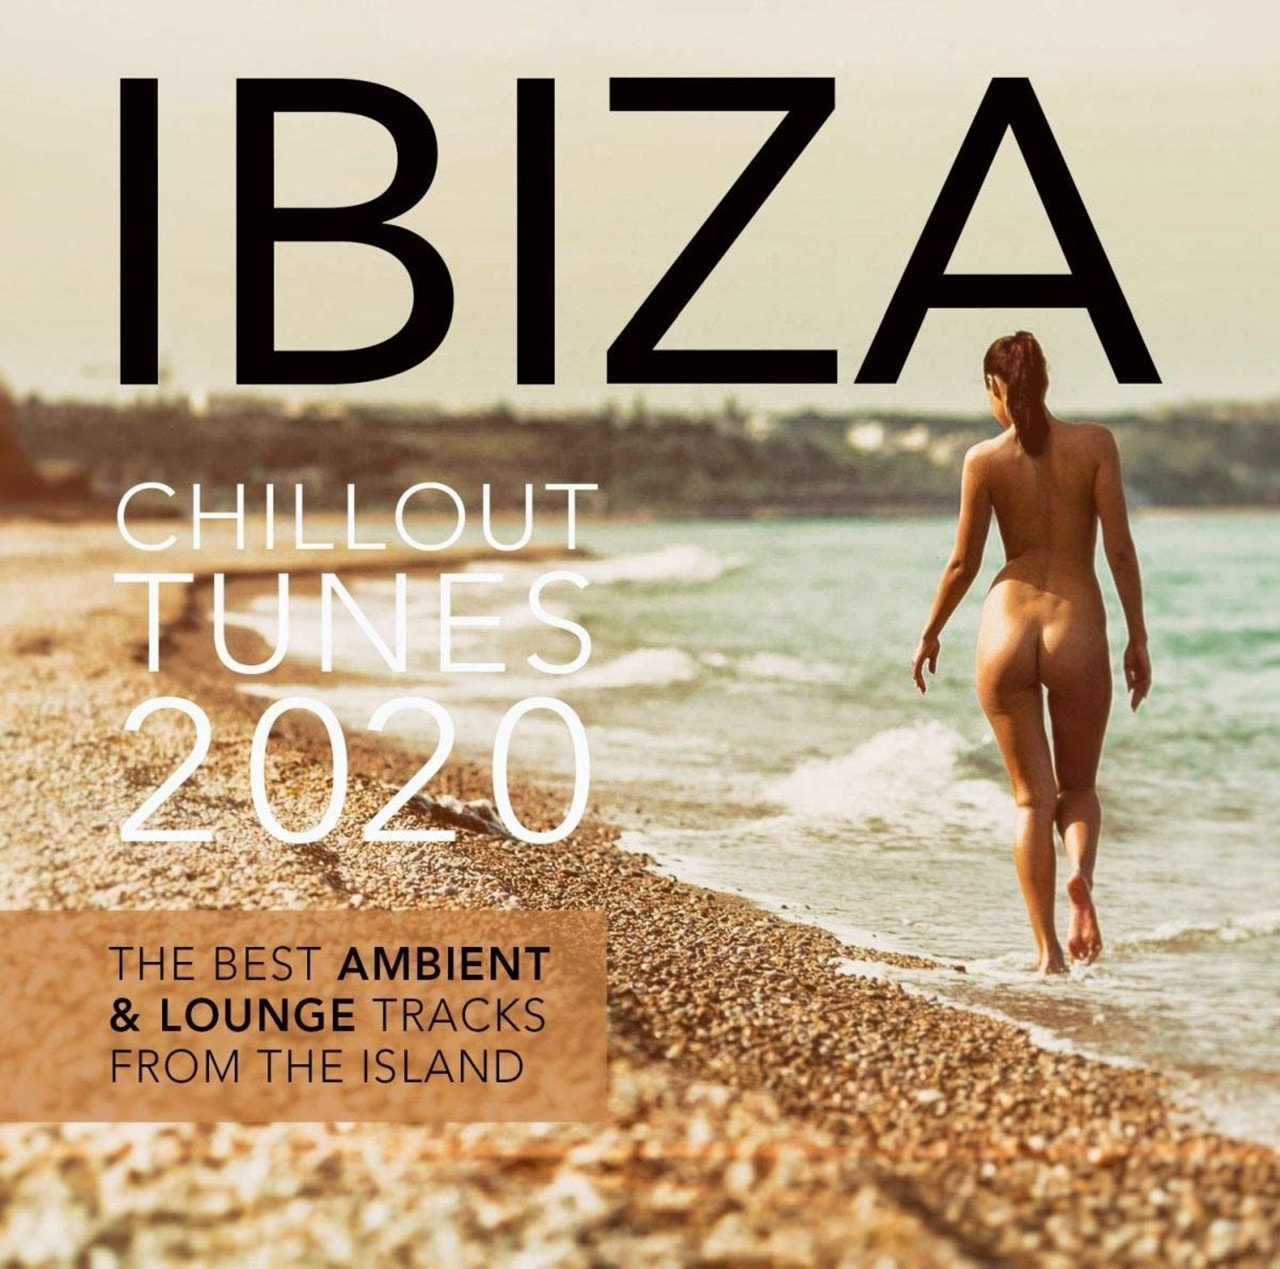 Ibiza Chill Out Tunes 2020: The Best Ambient & Lounge Tracks from the Island - 1